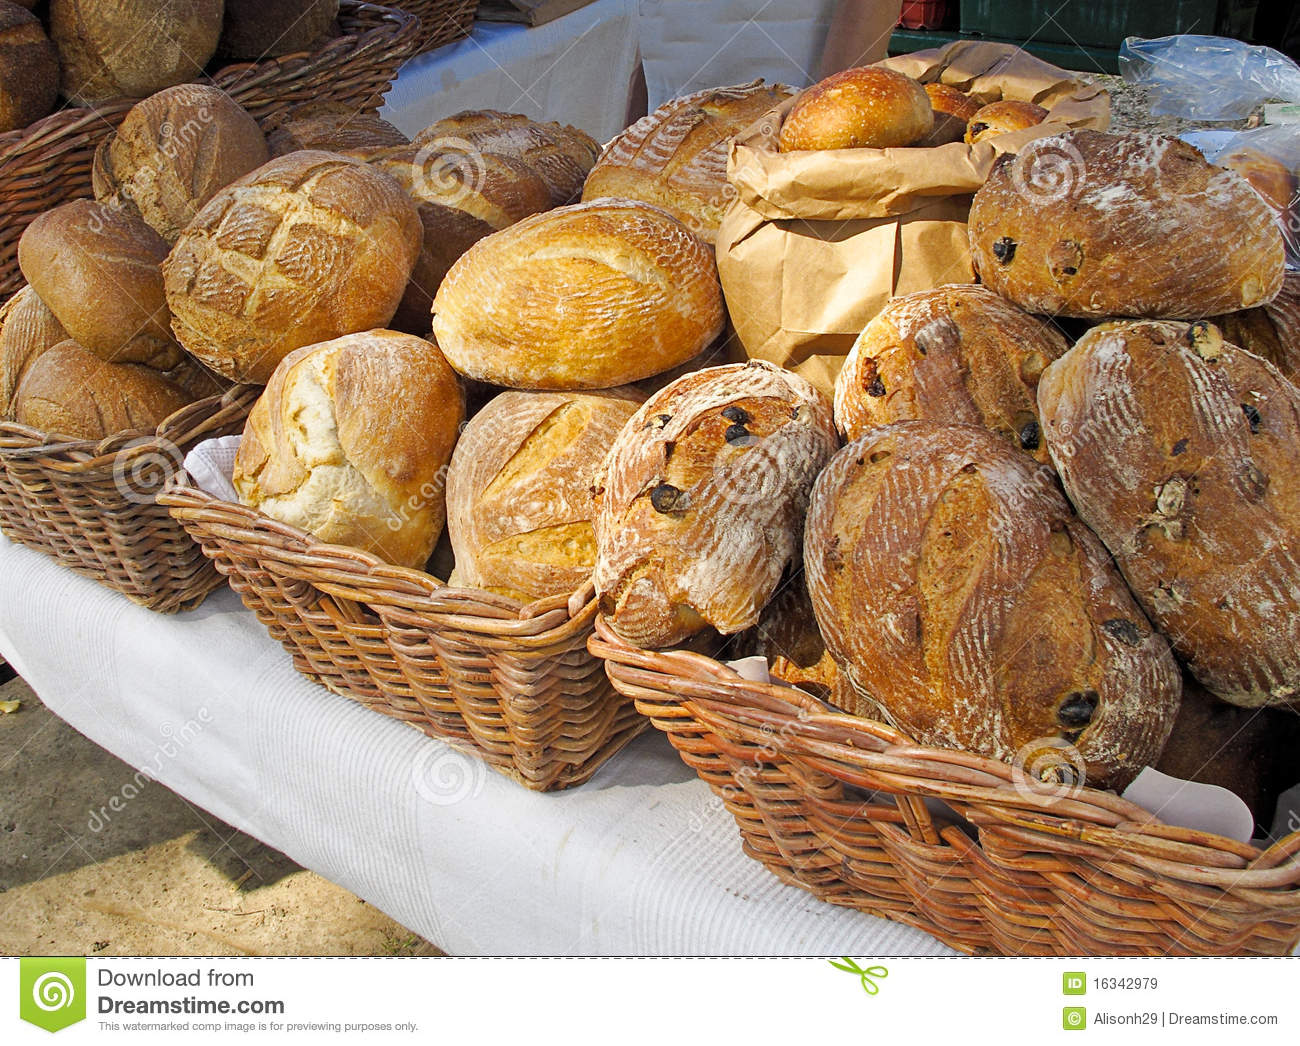 ... Of Bread At Farmers Market Royalty Free Stock Images - Image: 16342979